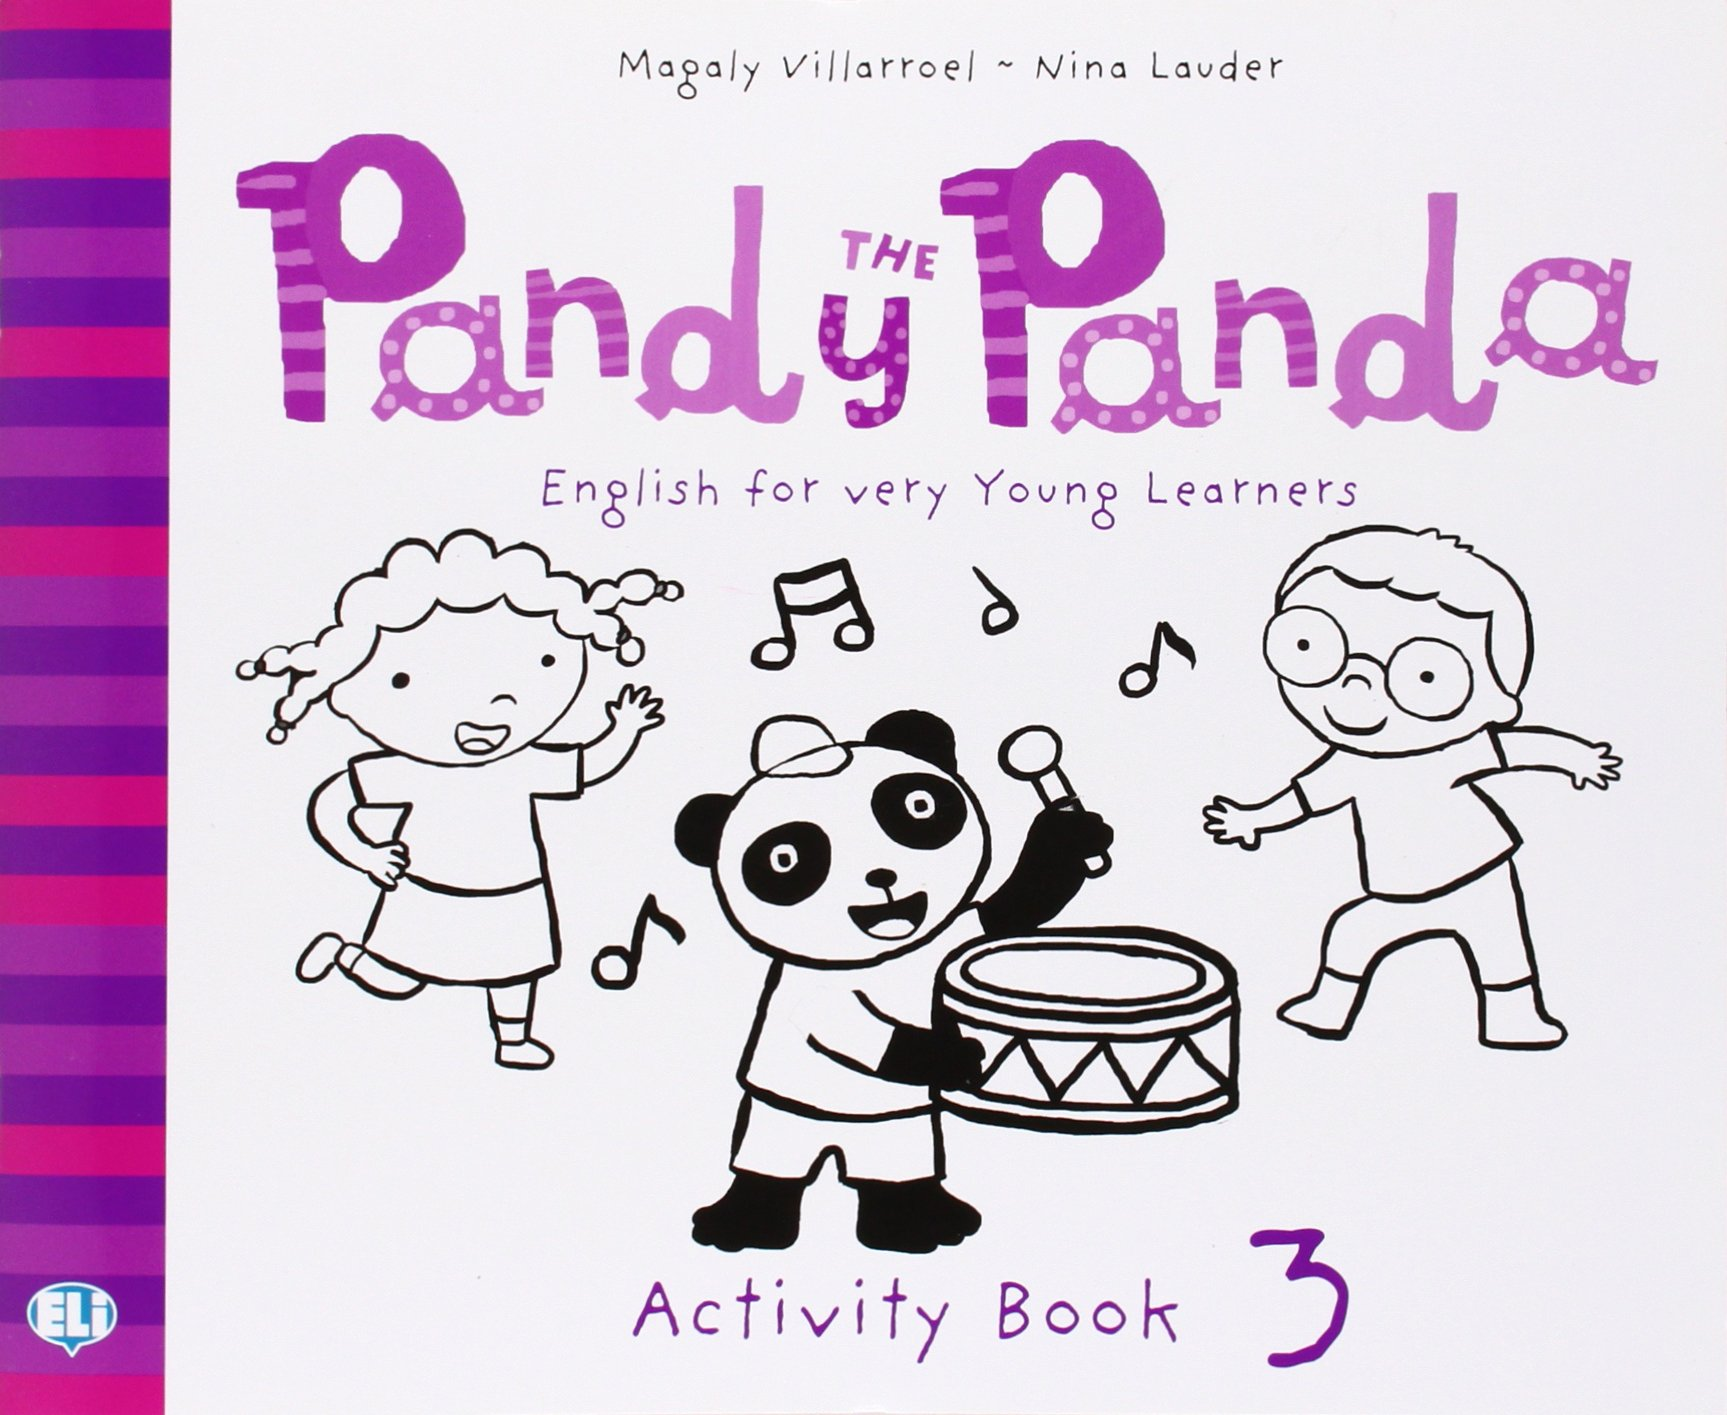 PANDY THE PANDA 3 Activity Book